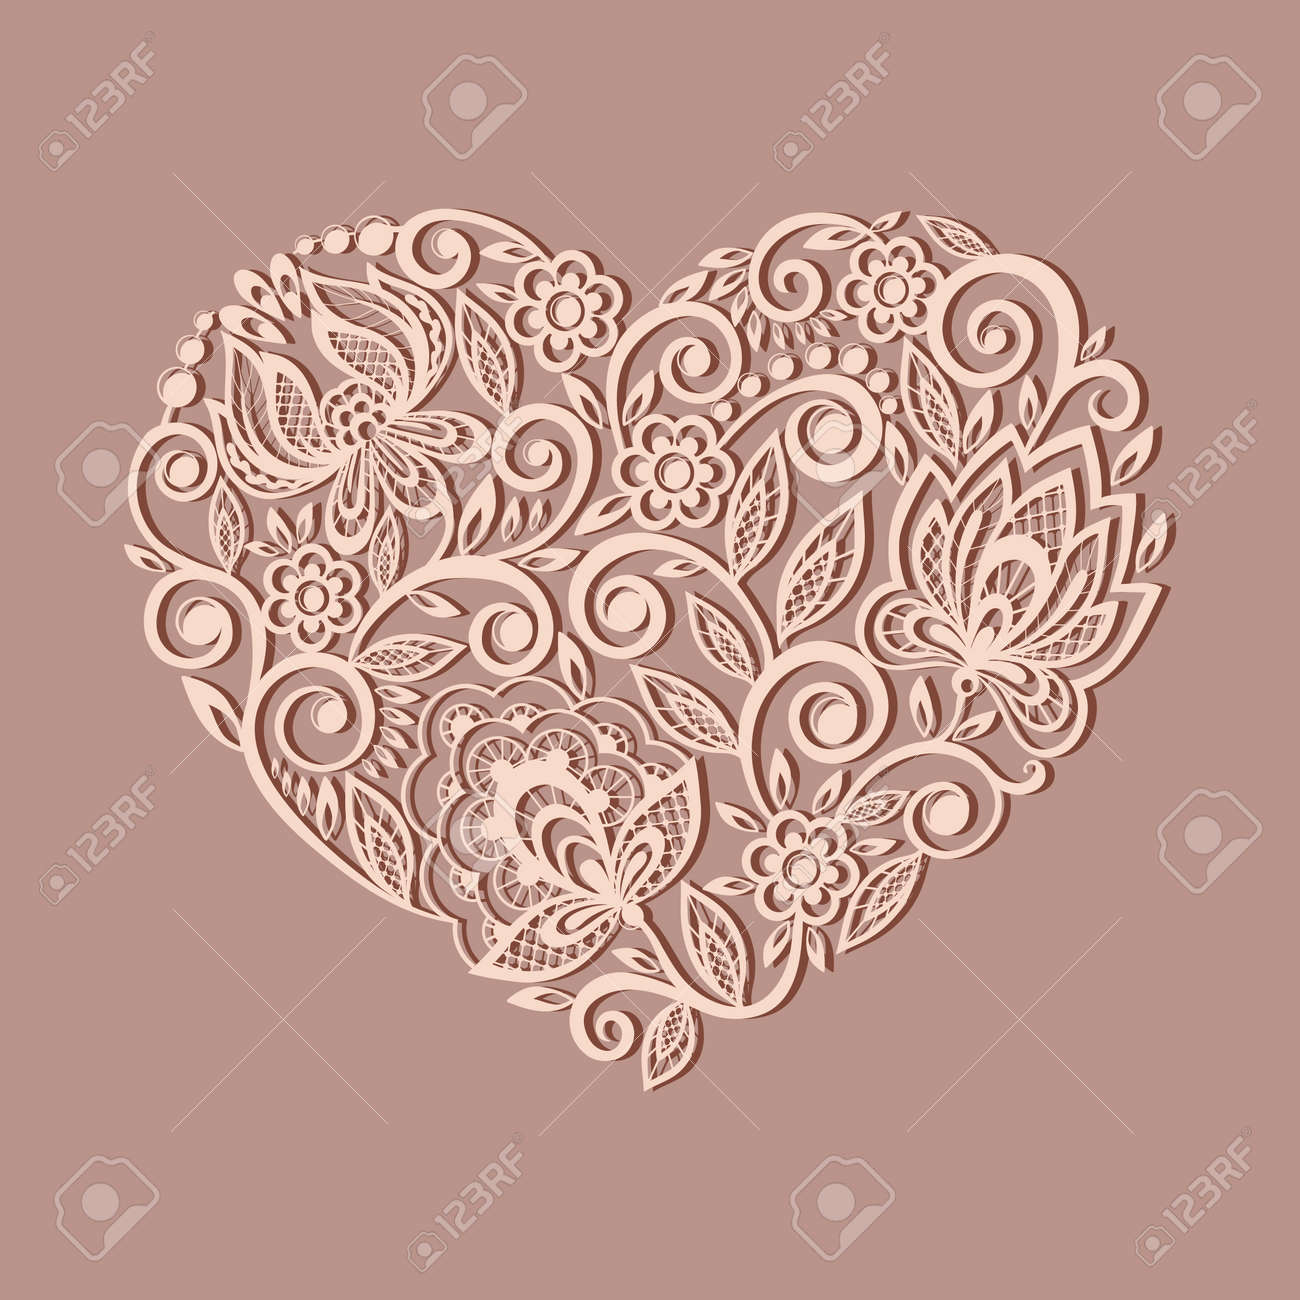 silhouette of the heart symbol decorated with floral pattern, a design element in the old style. Many similarities to the author's profile - 23060657